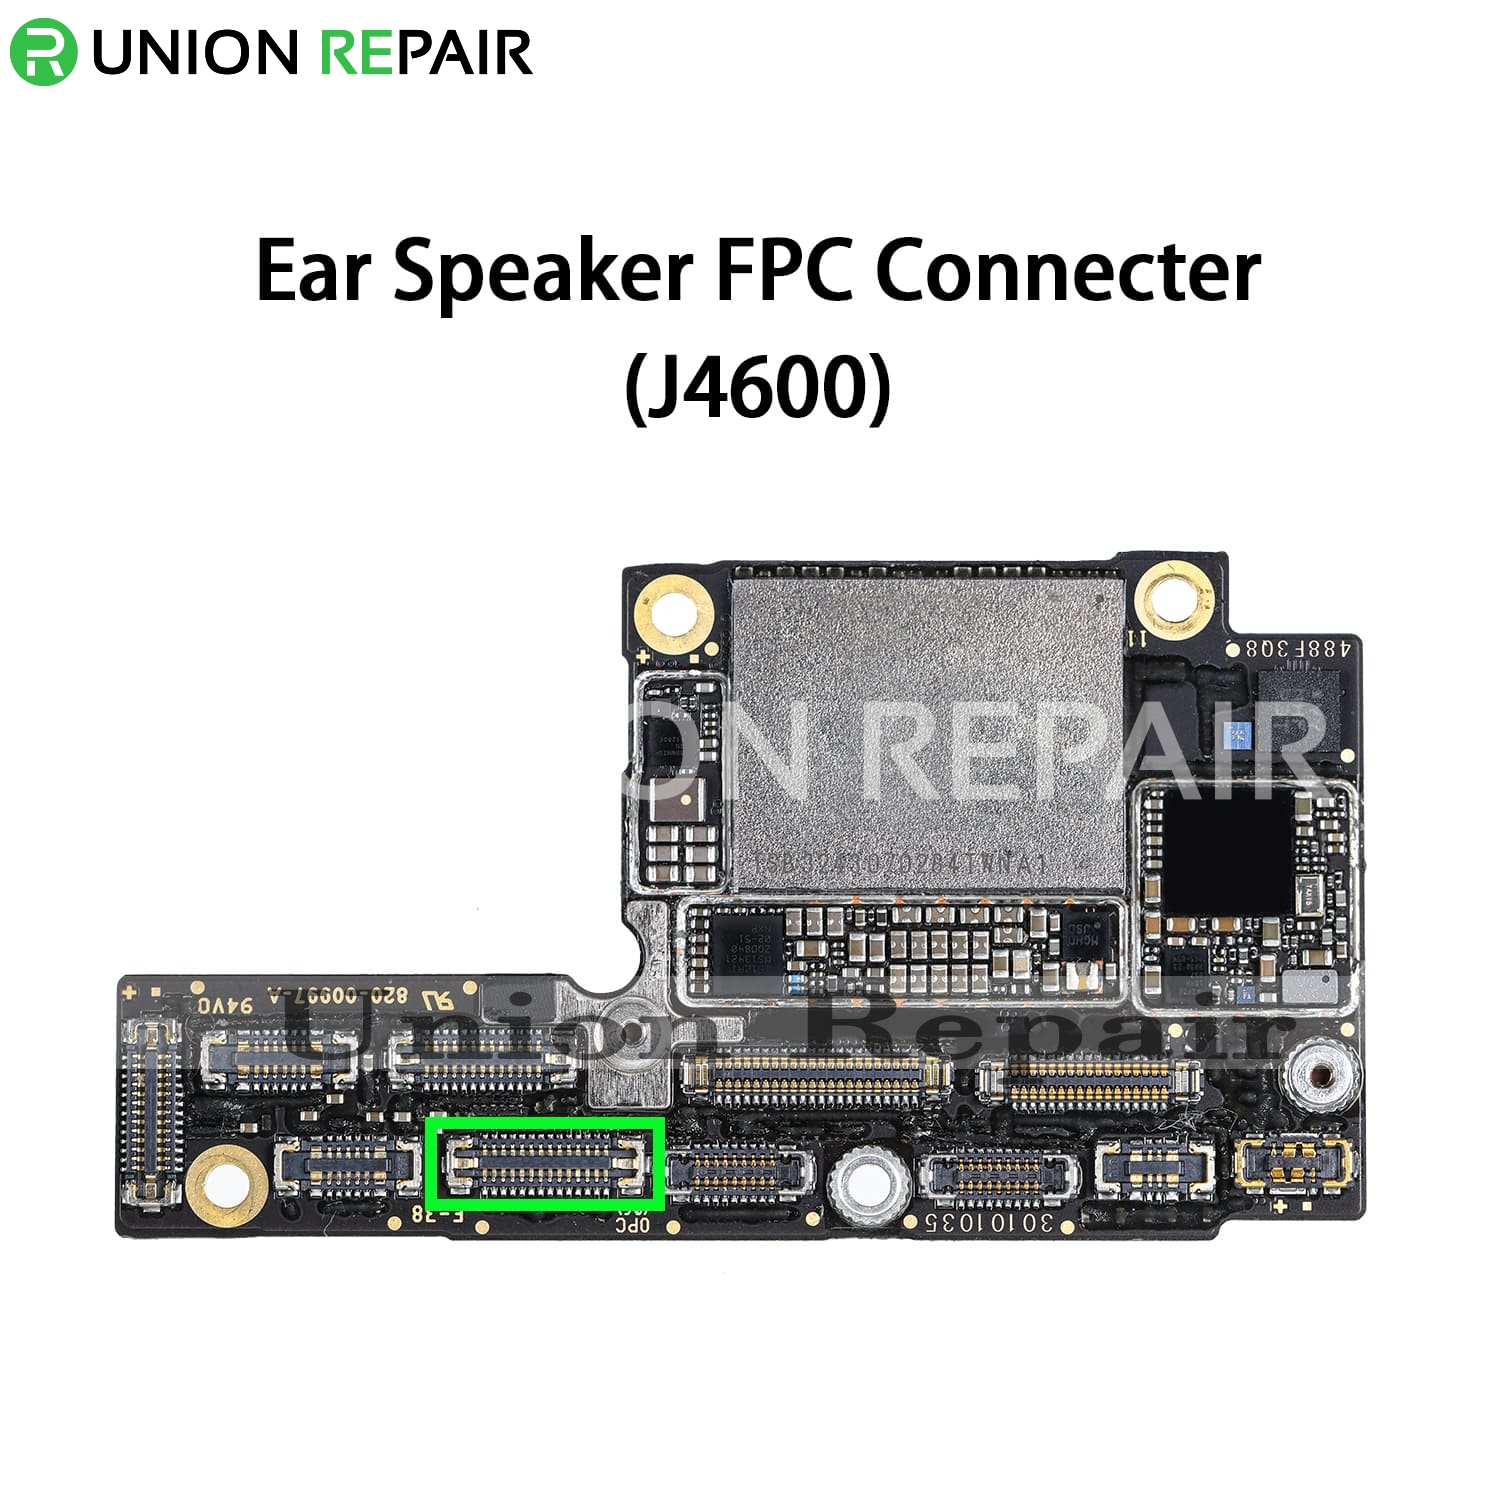 Replacement for iPhone XS EarSpeaker Connector Port Onboard